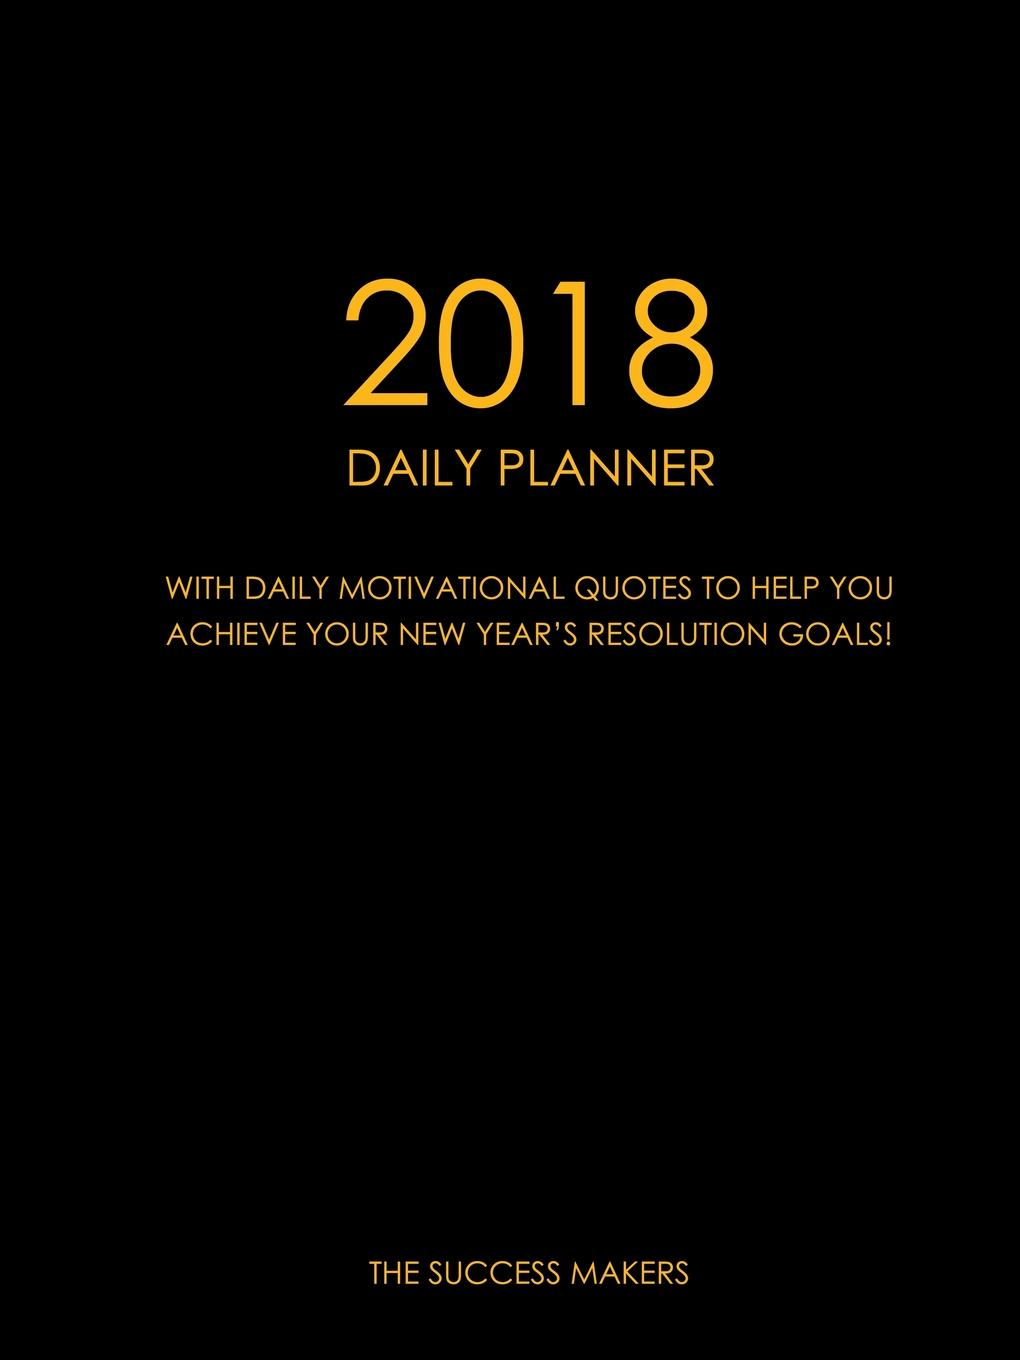 The Success Makers 2018 Daily Planner set wonders in the new year s plaid